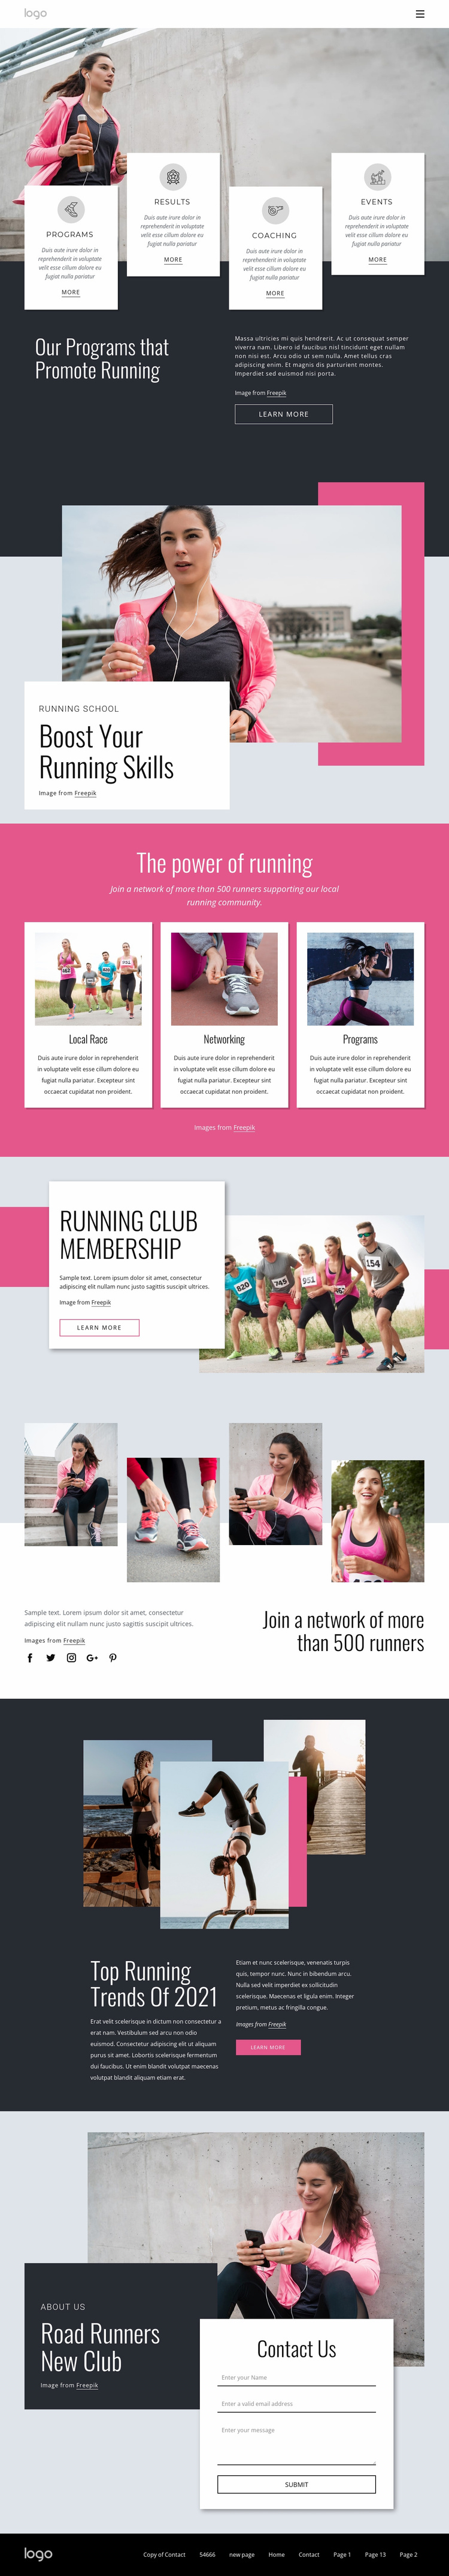 Running and walking community Website Template